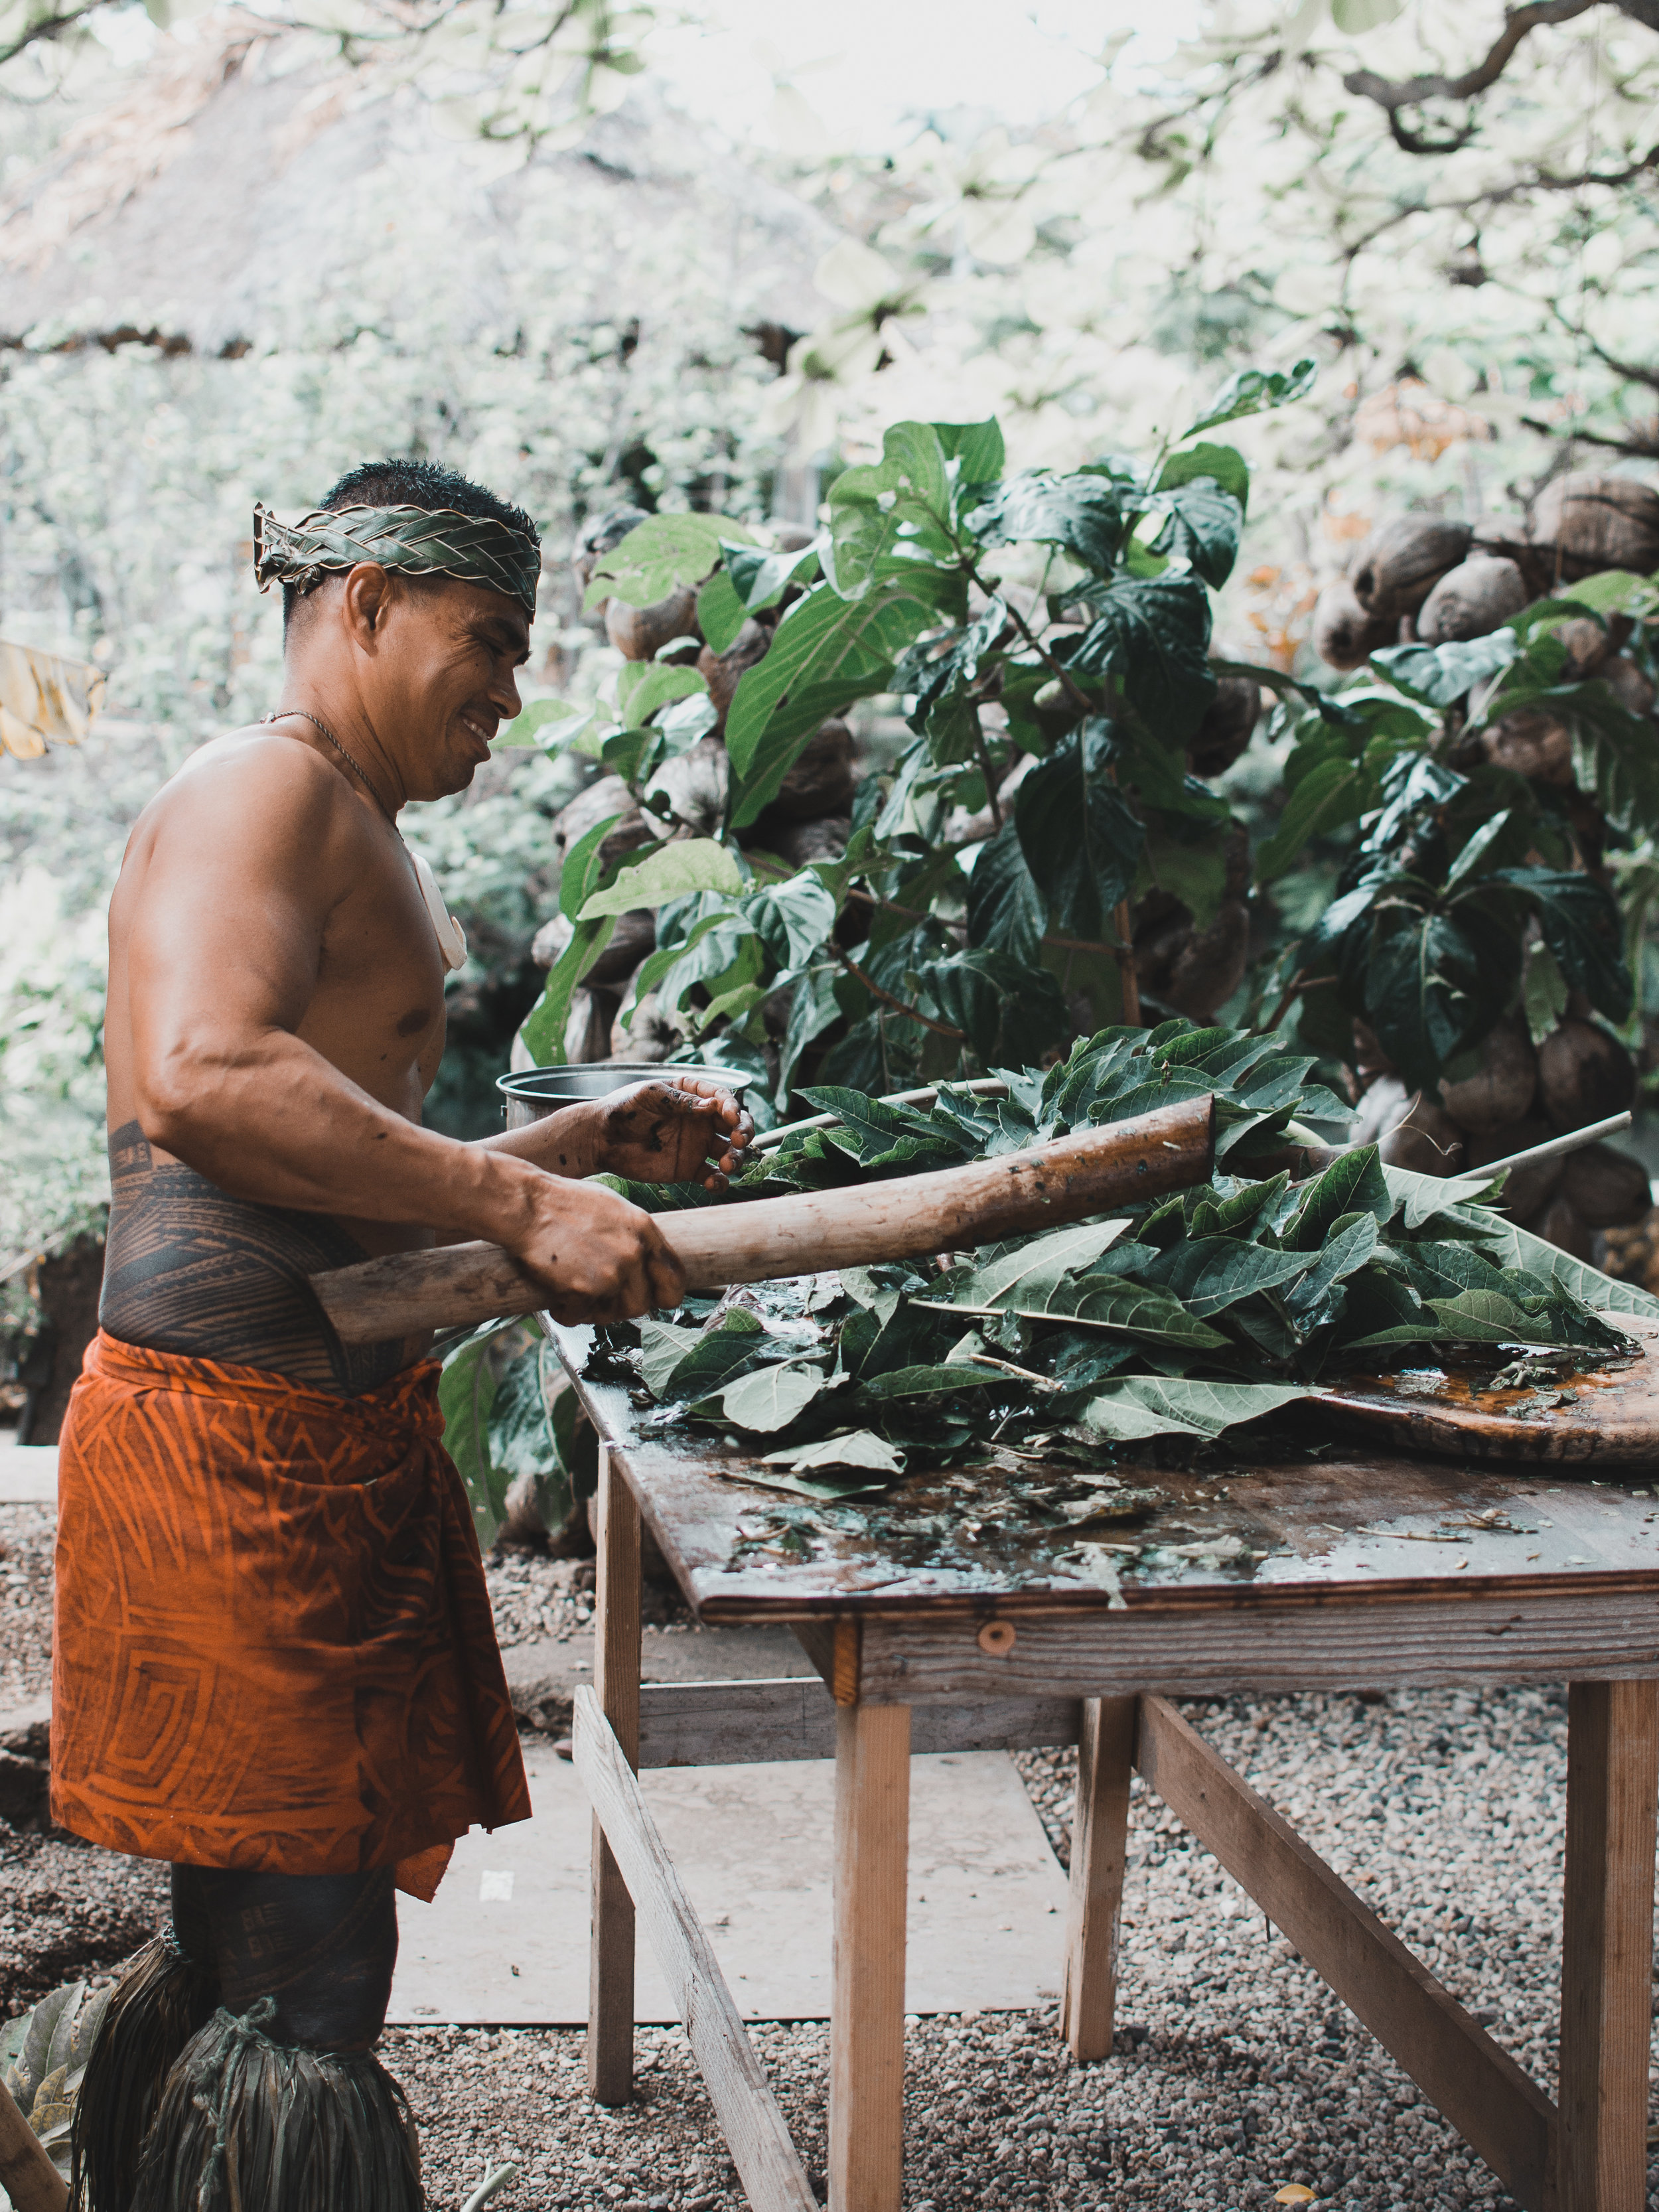 Learned about Polynesian culture on the island of Oahu